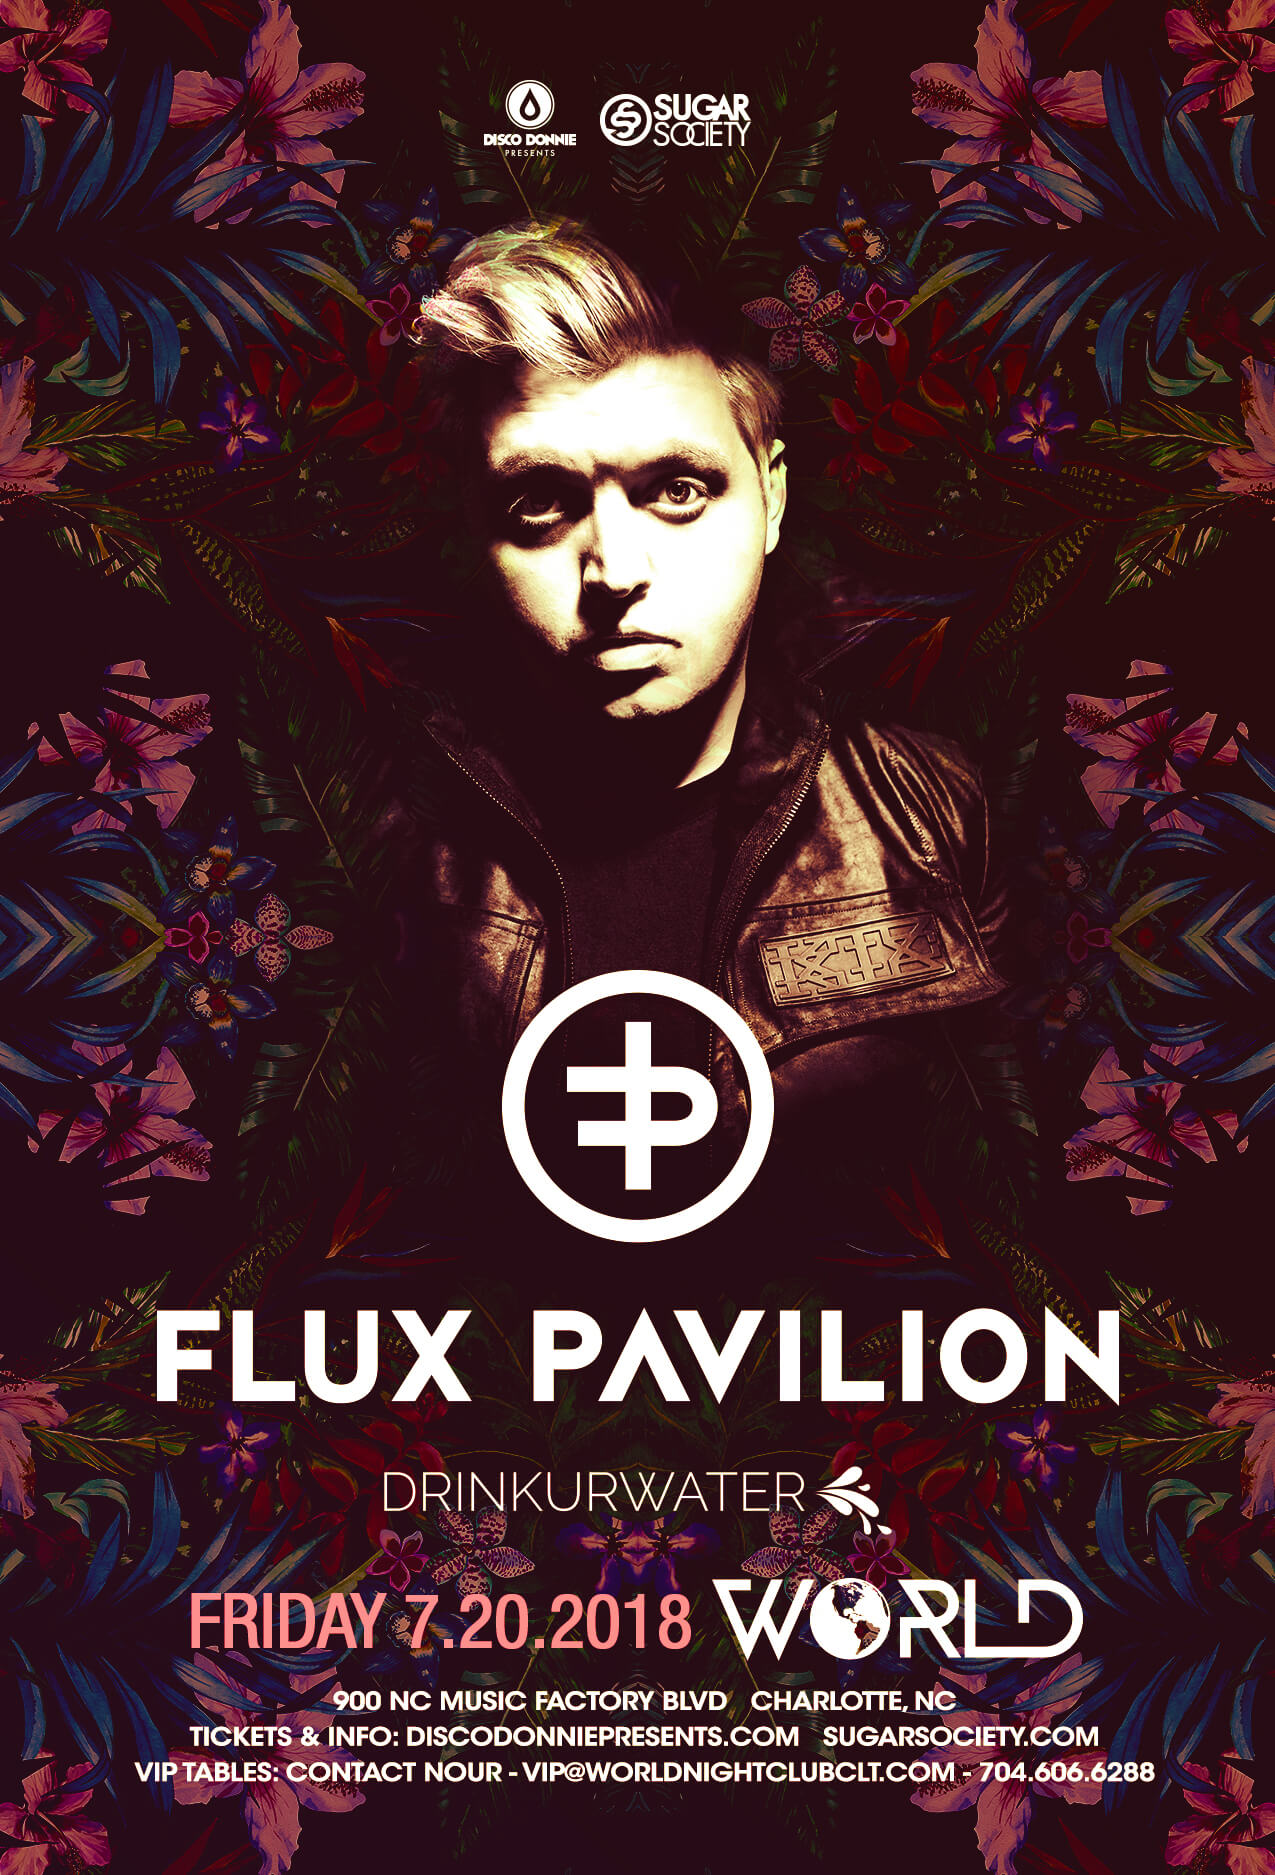 Flux Pavilion in Charlotte